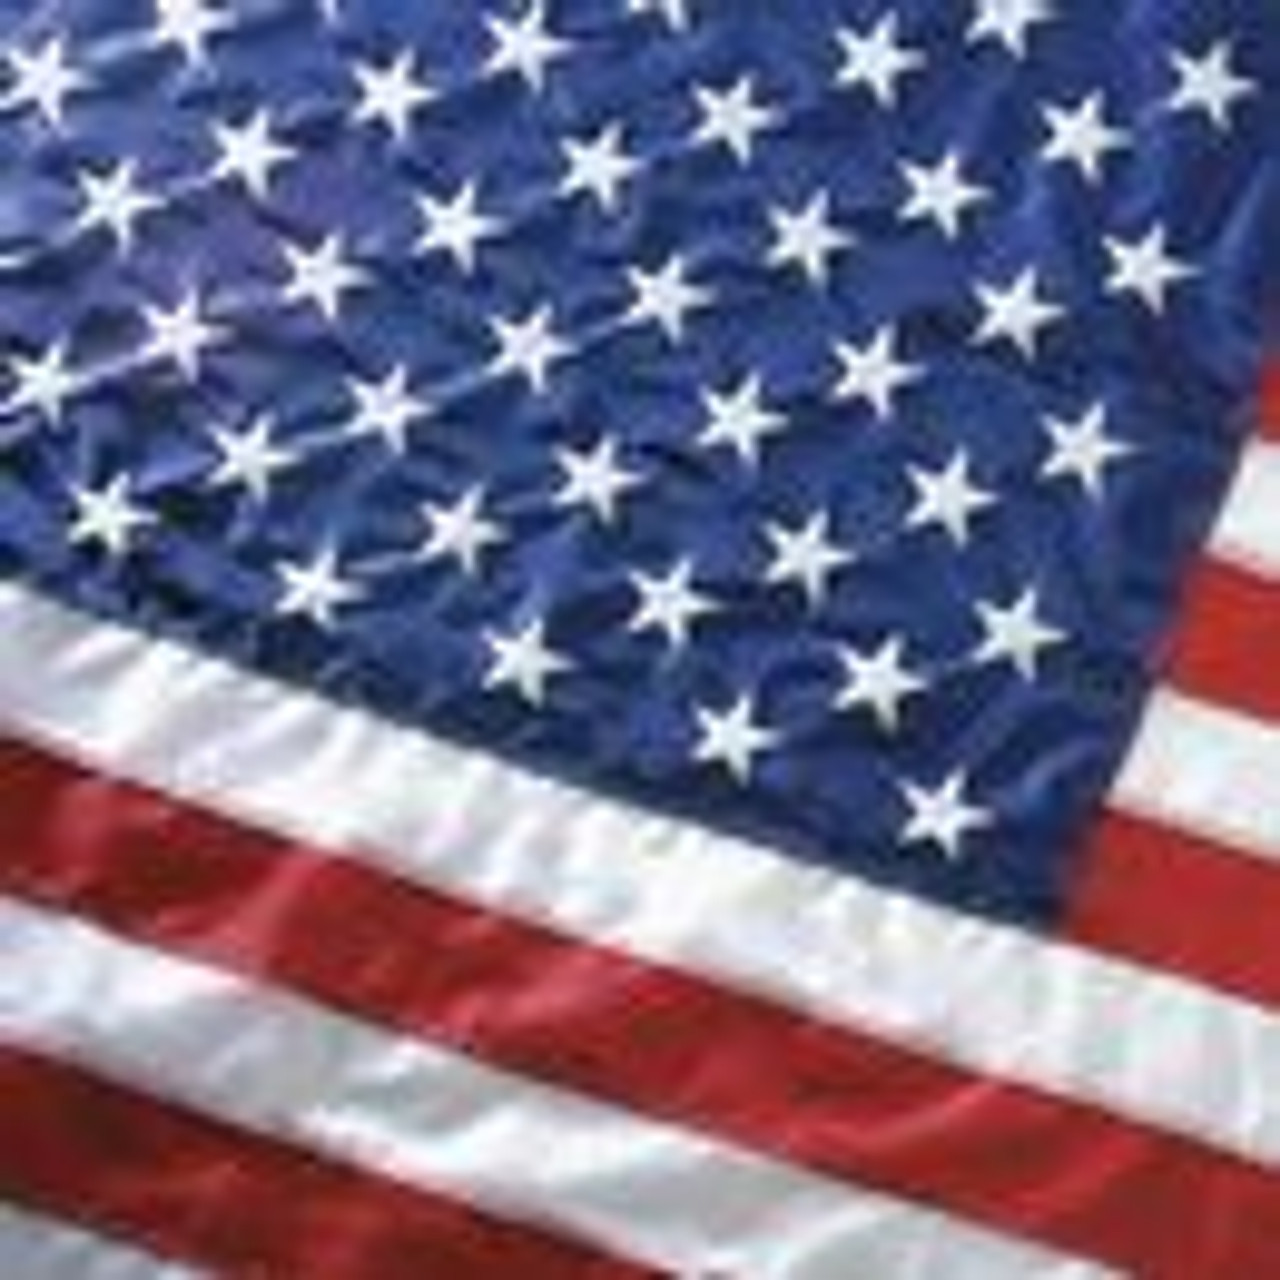 This 6'x10' nylon U.S. flag comes with brass grommets. This flag has sewn stripes and embroidered stars. Flag is 100% made in the U.S.A.